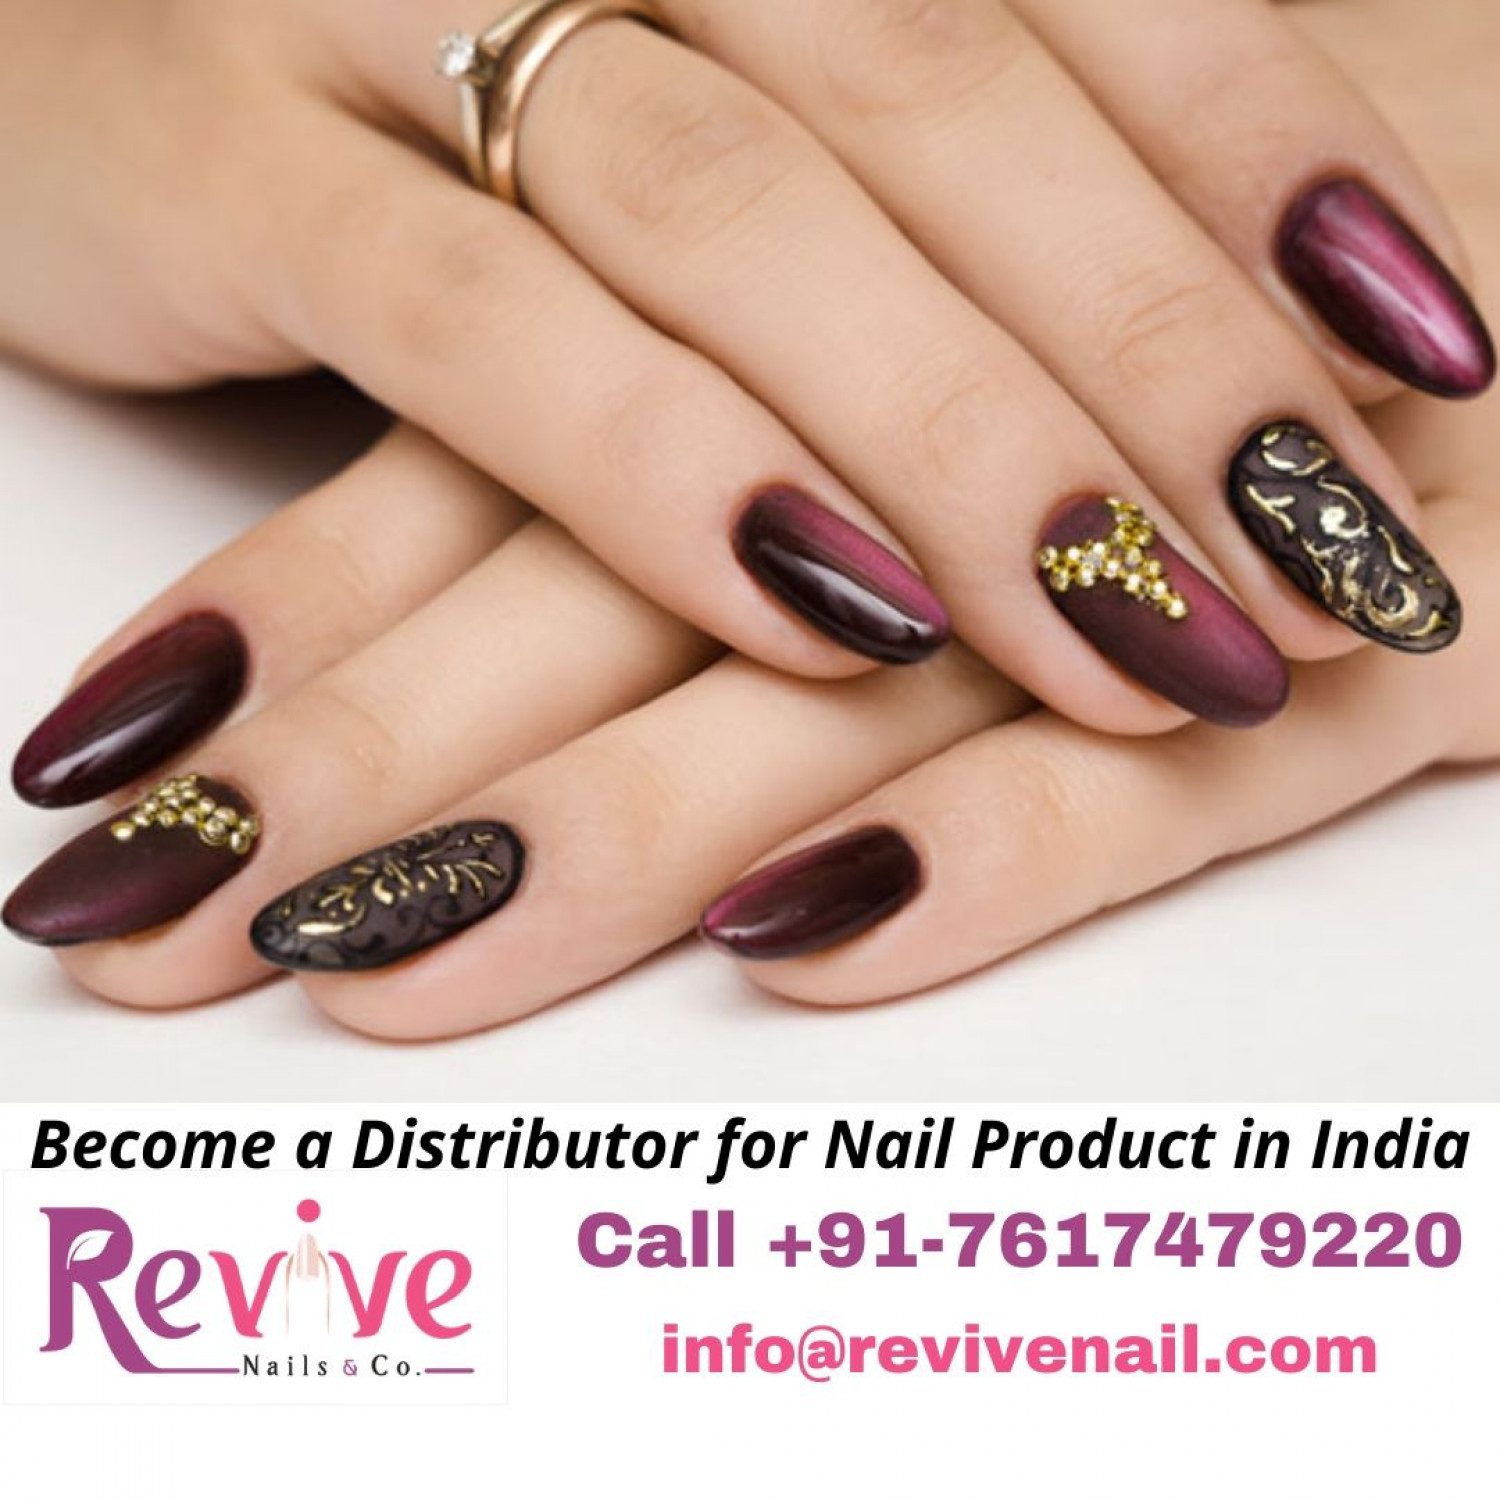 Become a Distributor for Nail Product in India Infographic